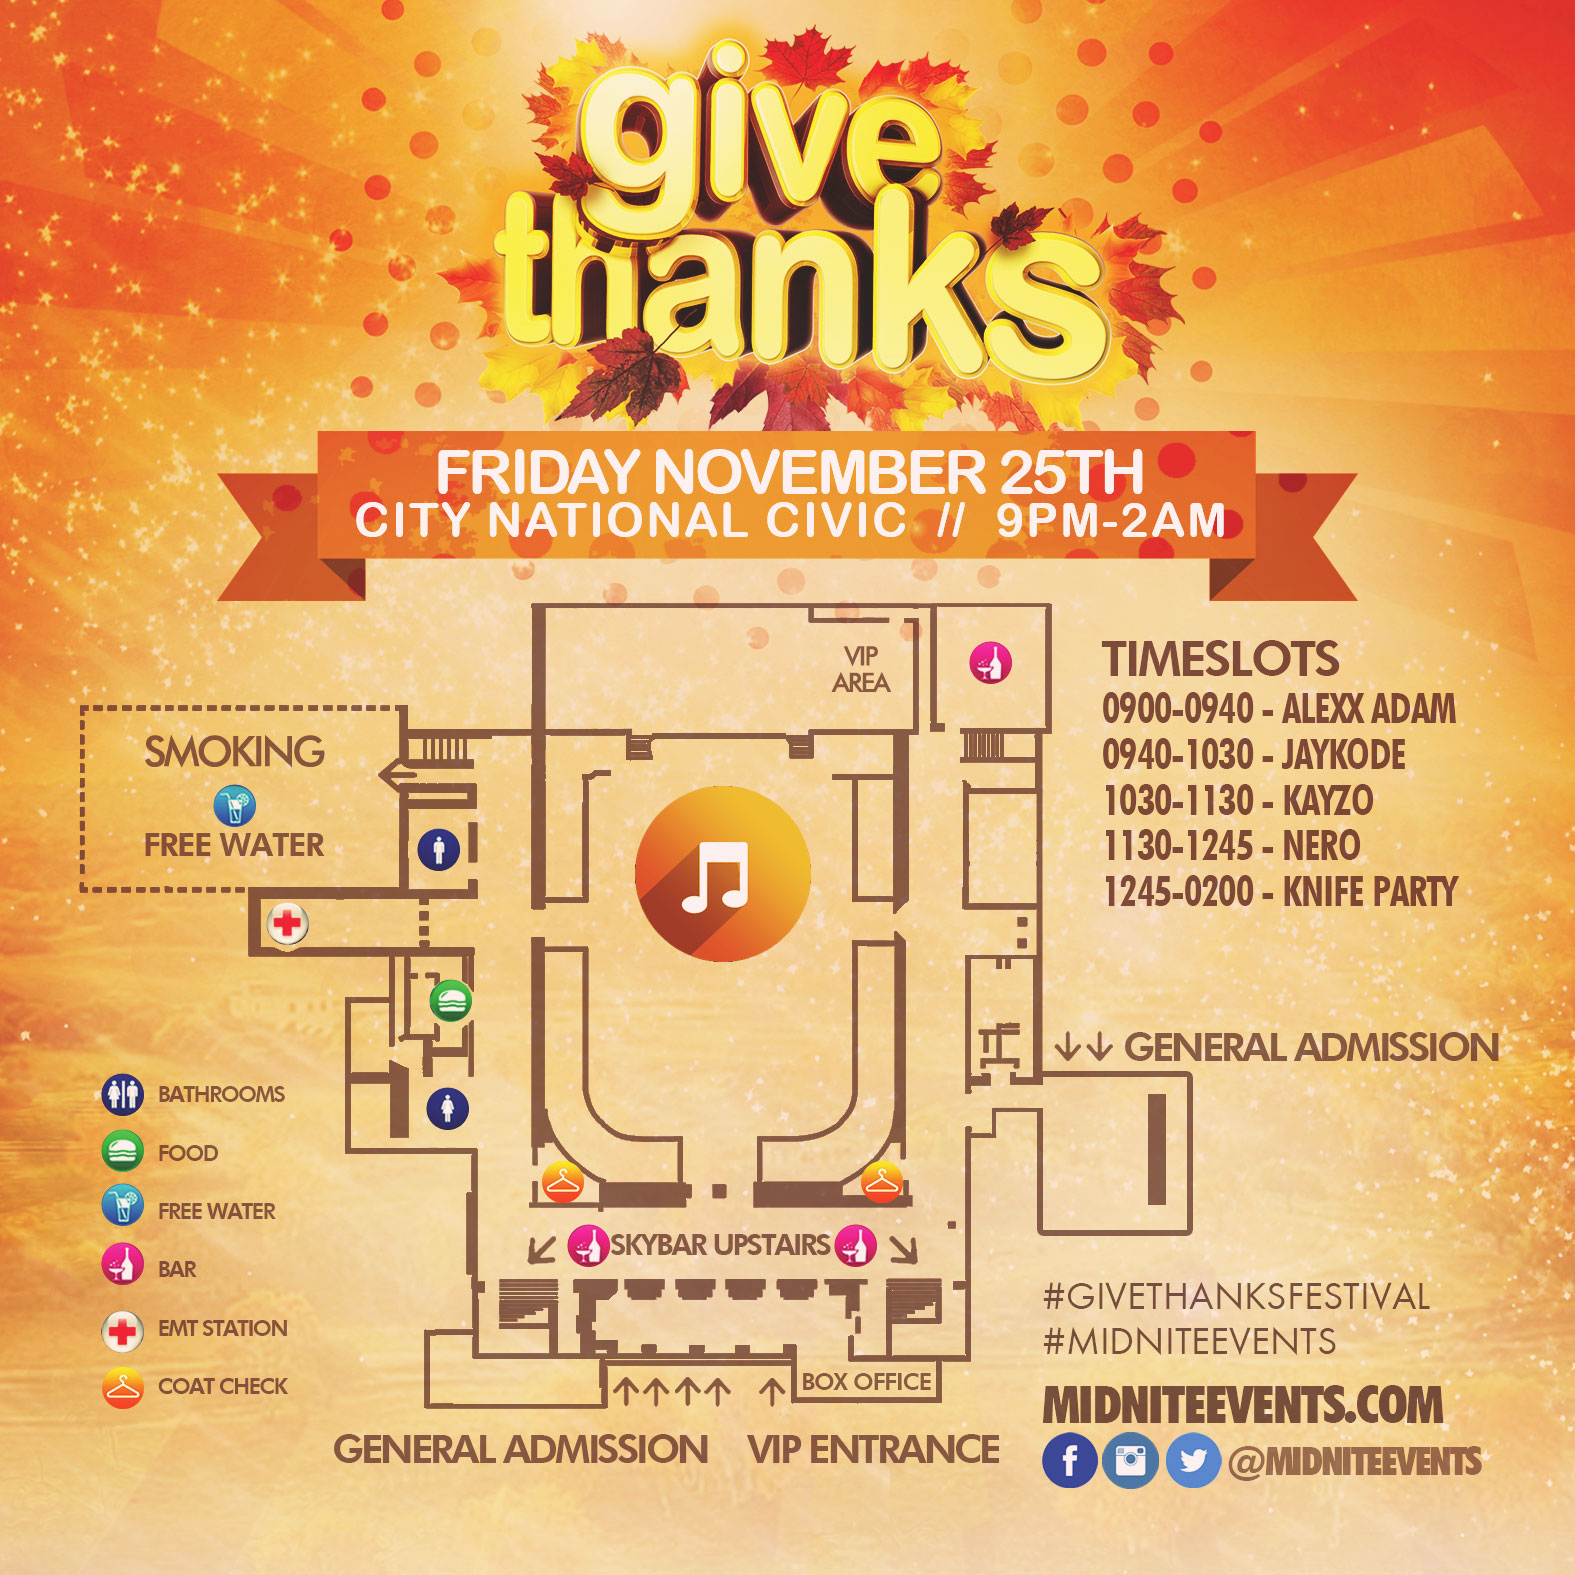 Give Thanks 2016 Friday map timeslots